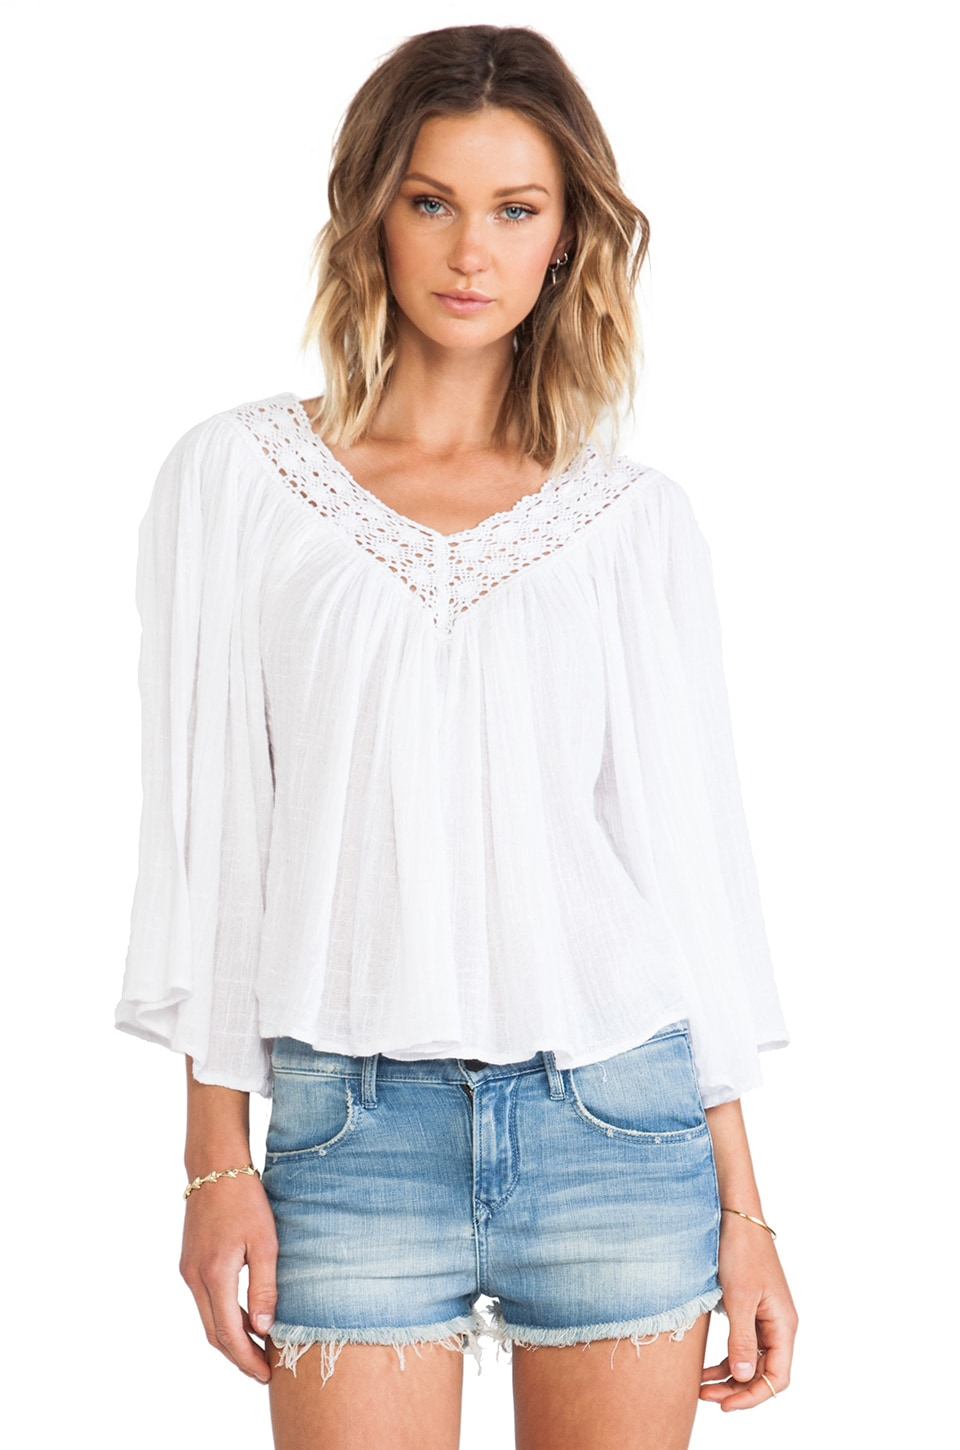 Surf Gypsy Blouse in White